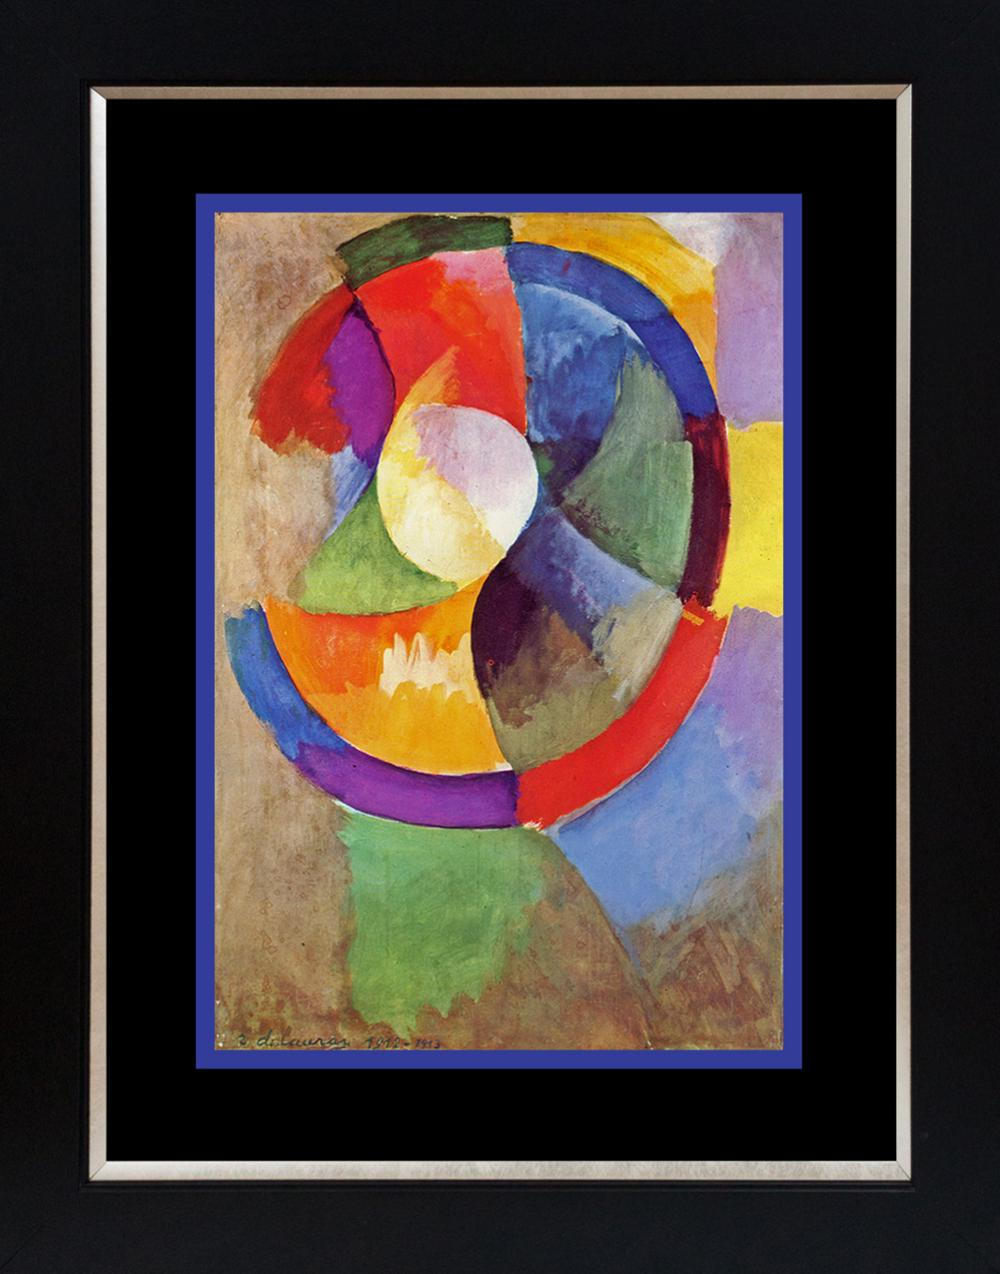 Lot 3000: Robert DeLaunay Color Plate Lithograph from 1957